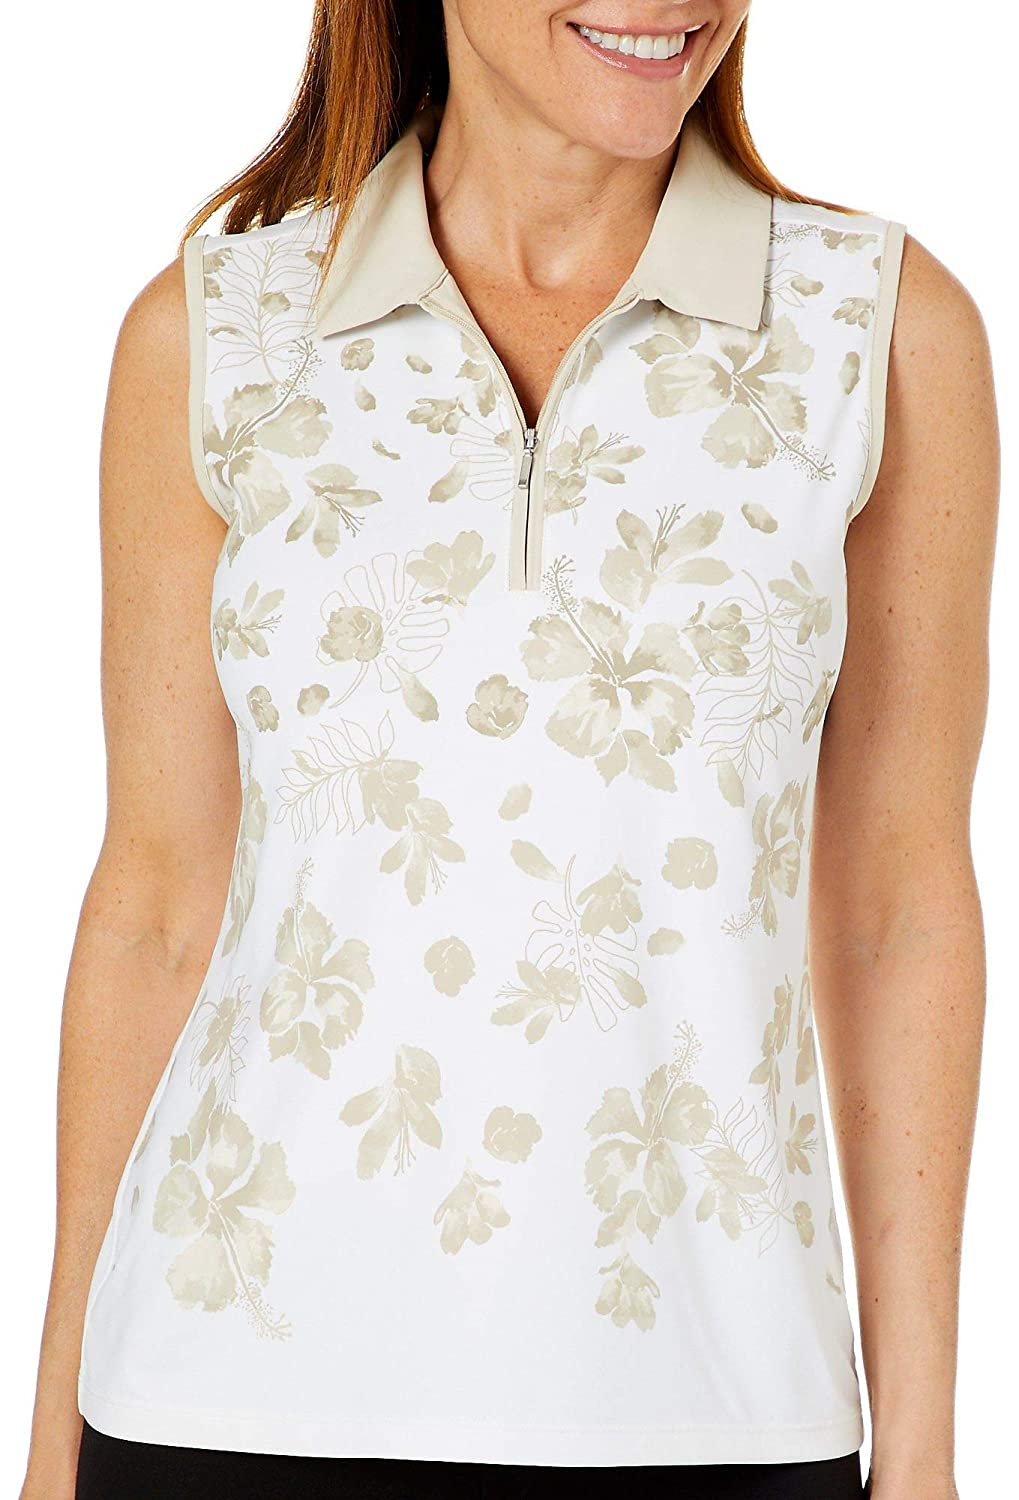 Coral Bay Golf Womens Sleeveless Tropical Floral Polo Shirt X Large